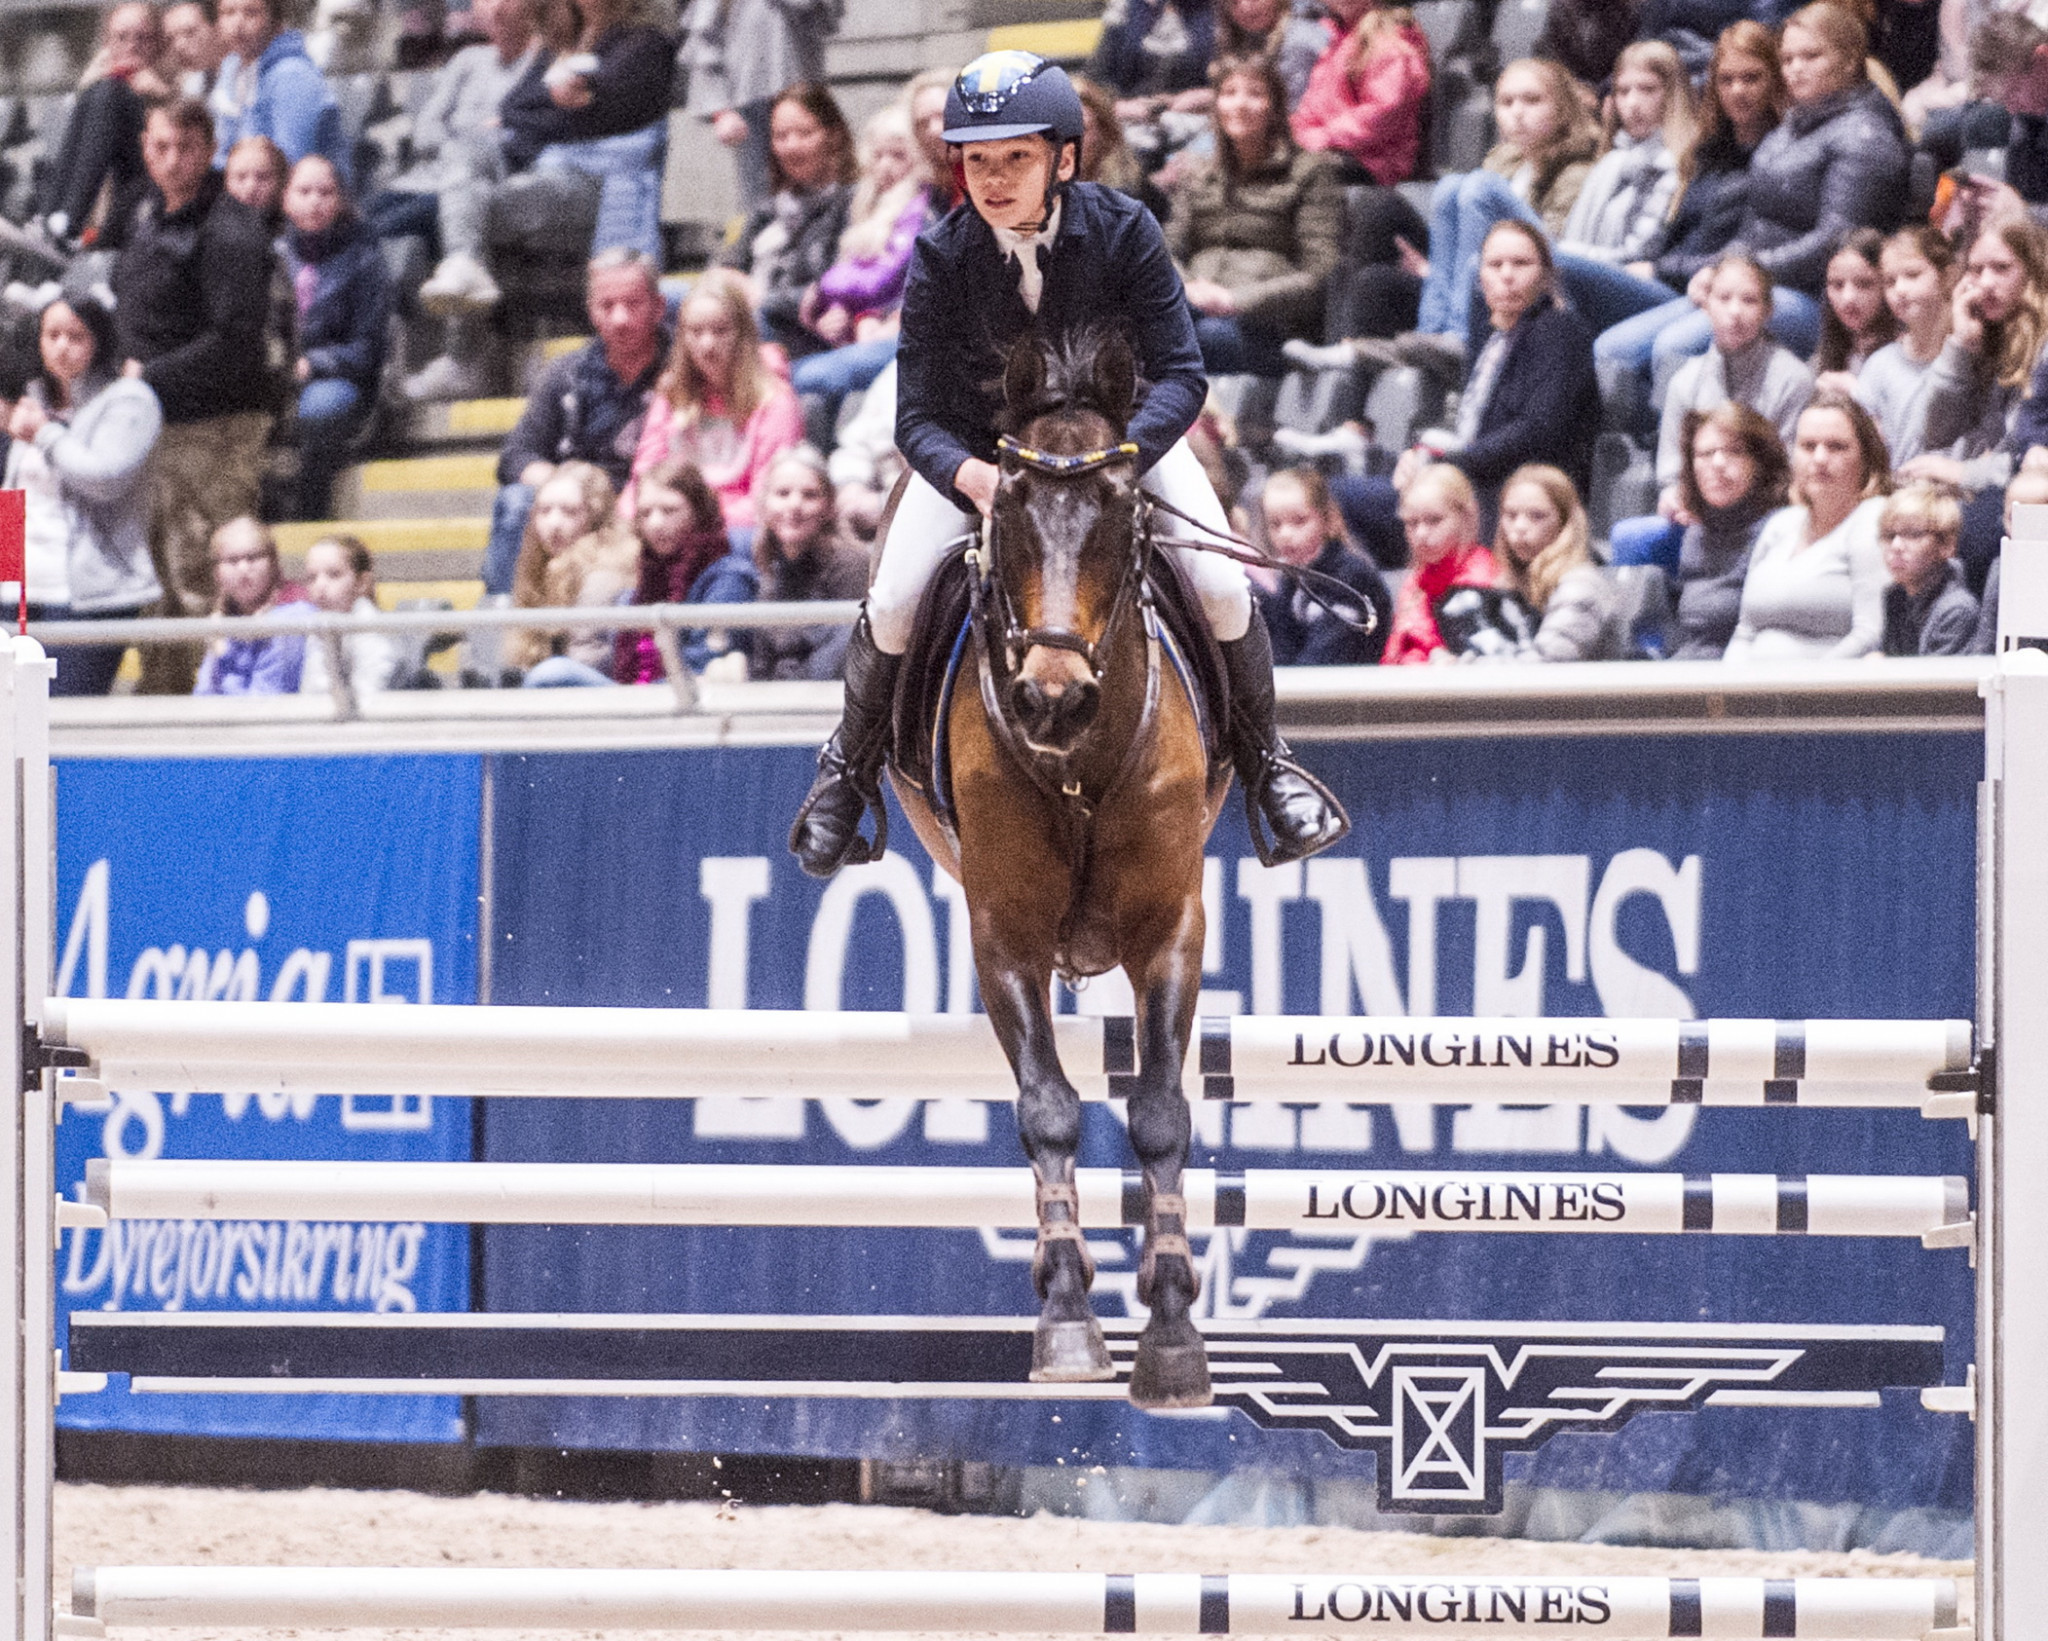 FEI announce host cities for youth equestrian events